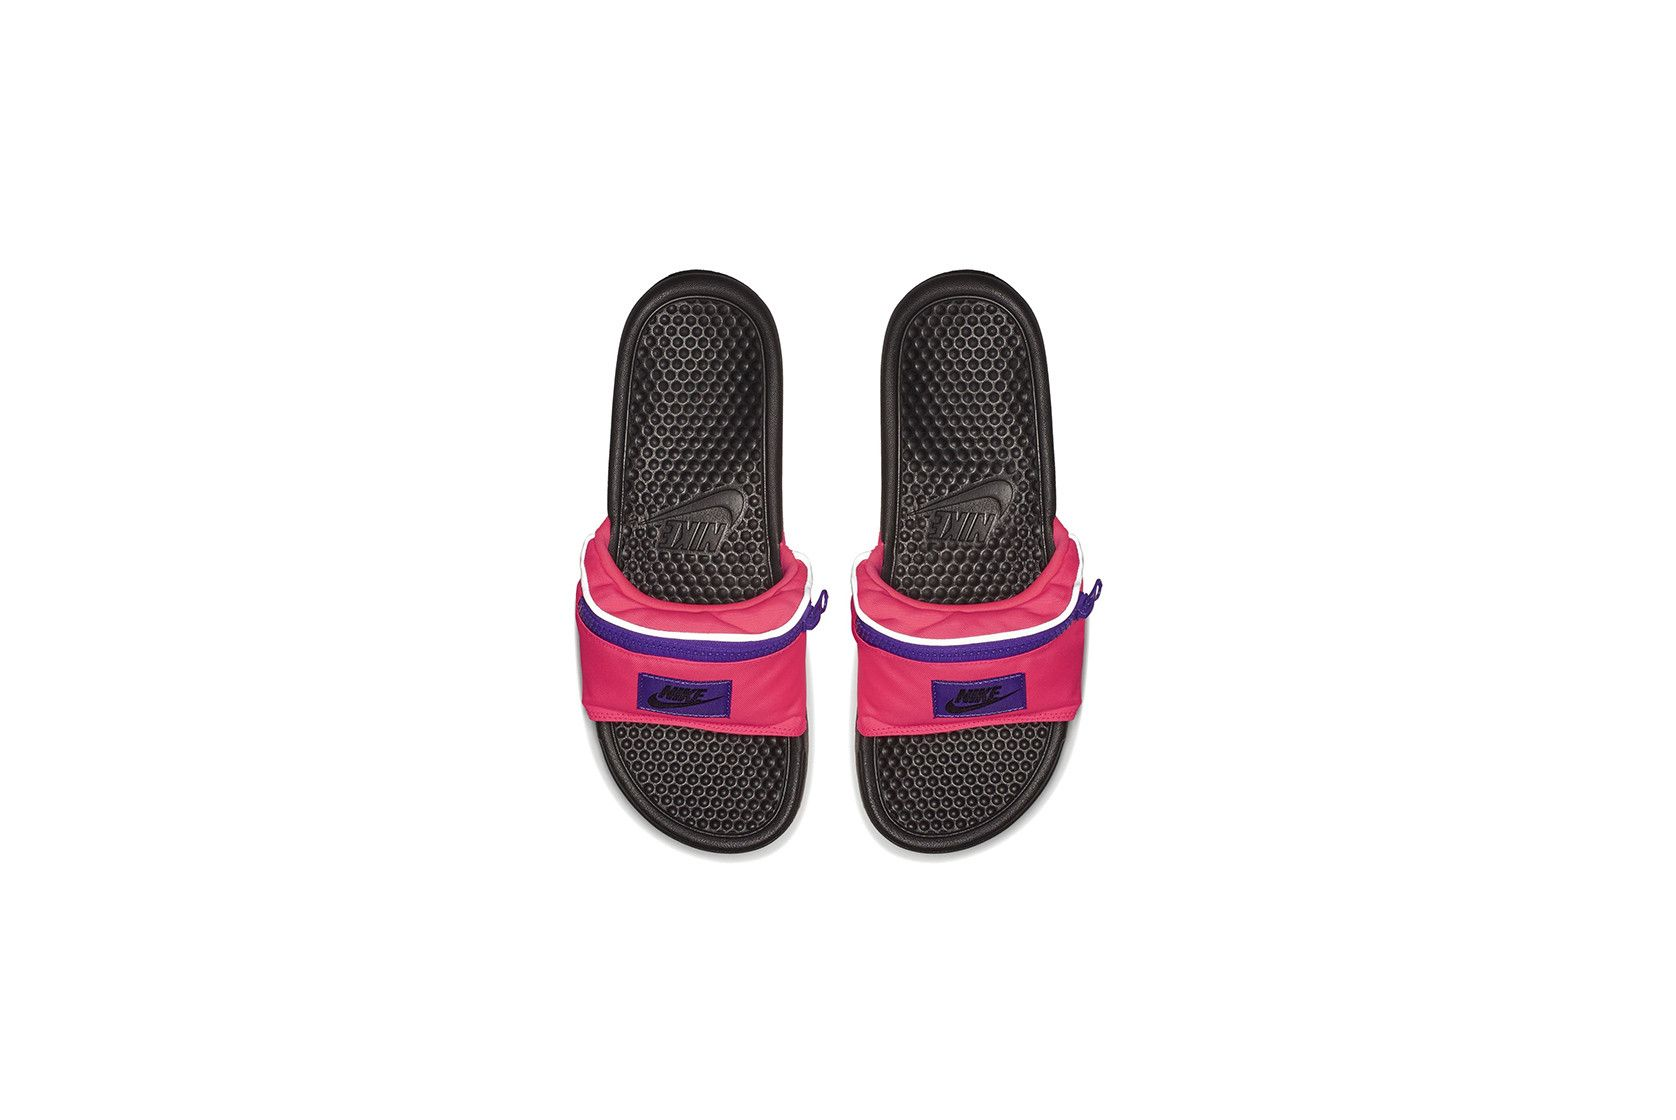 f7925f10dfa5 Nike Is Releasing Fanny Pack Slides for the Summer and They re Amazing -  New Nike Shoes for Summer